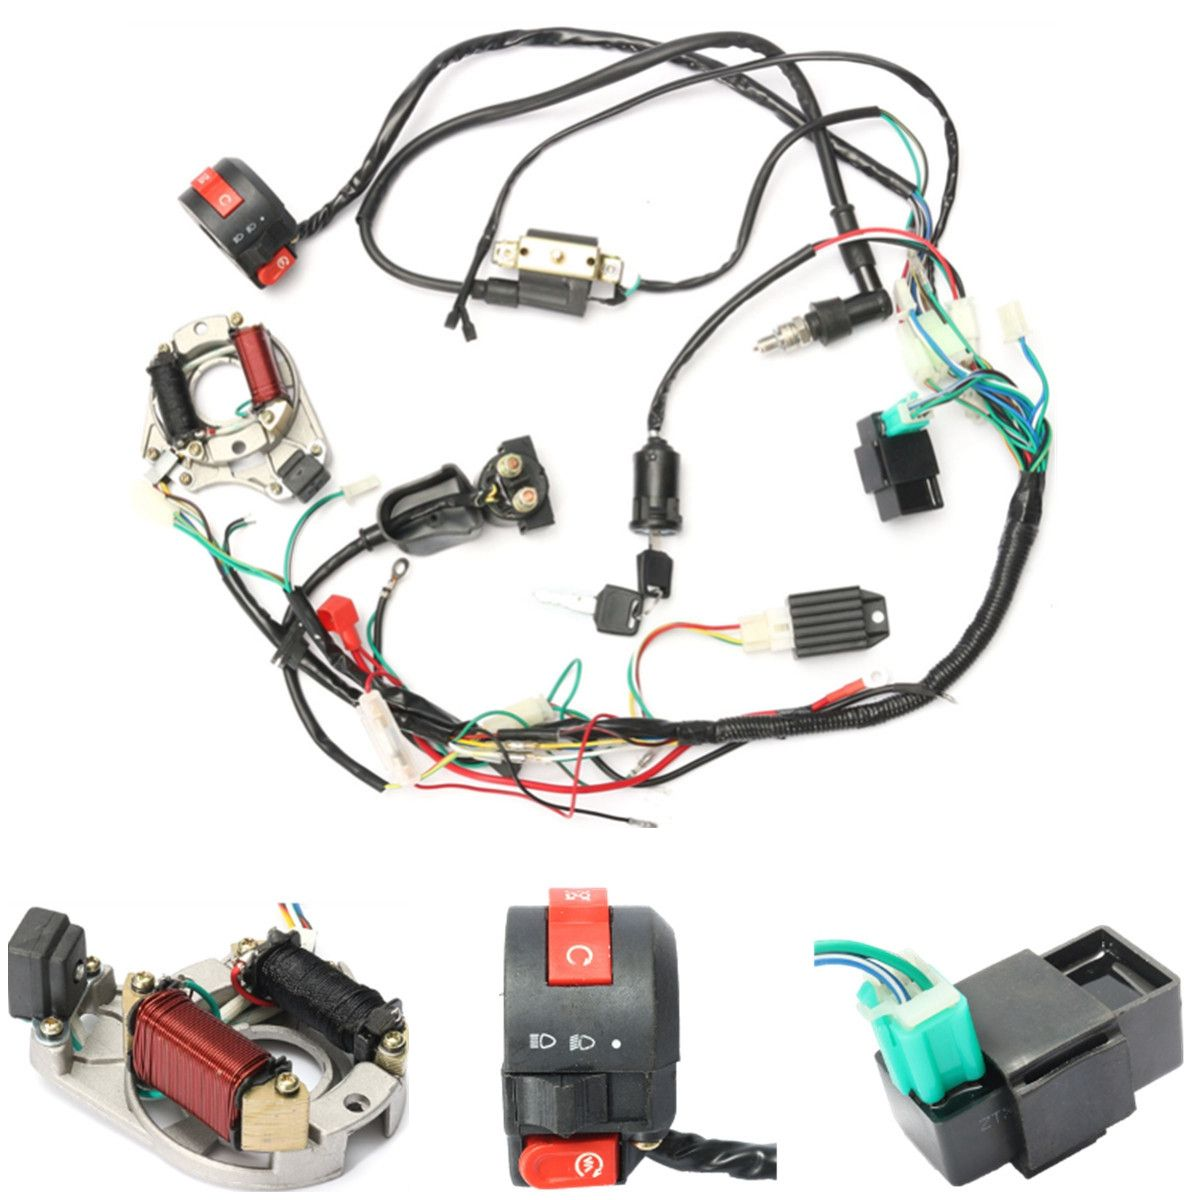 15a9eafdb51e7f6b3d059647d783681f 50cc 70cc 90cc 110cc cdi wire harness assembly wiring kit atv  at gsmx.co